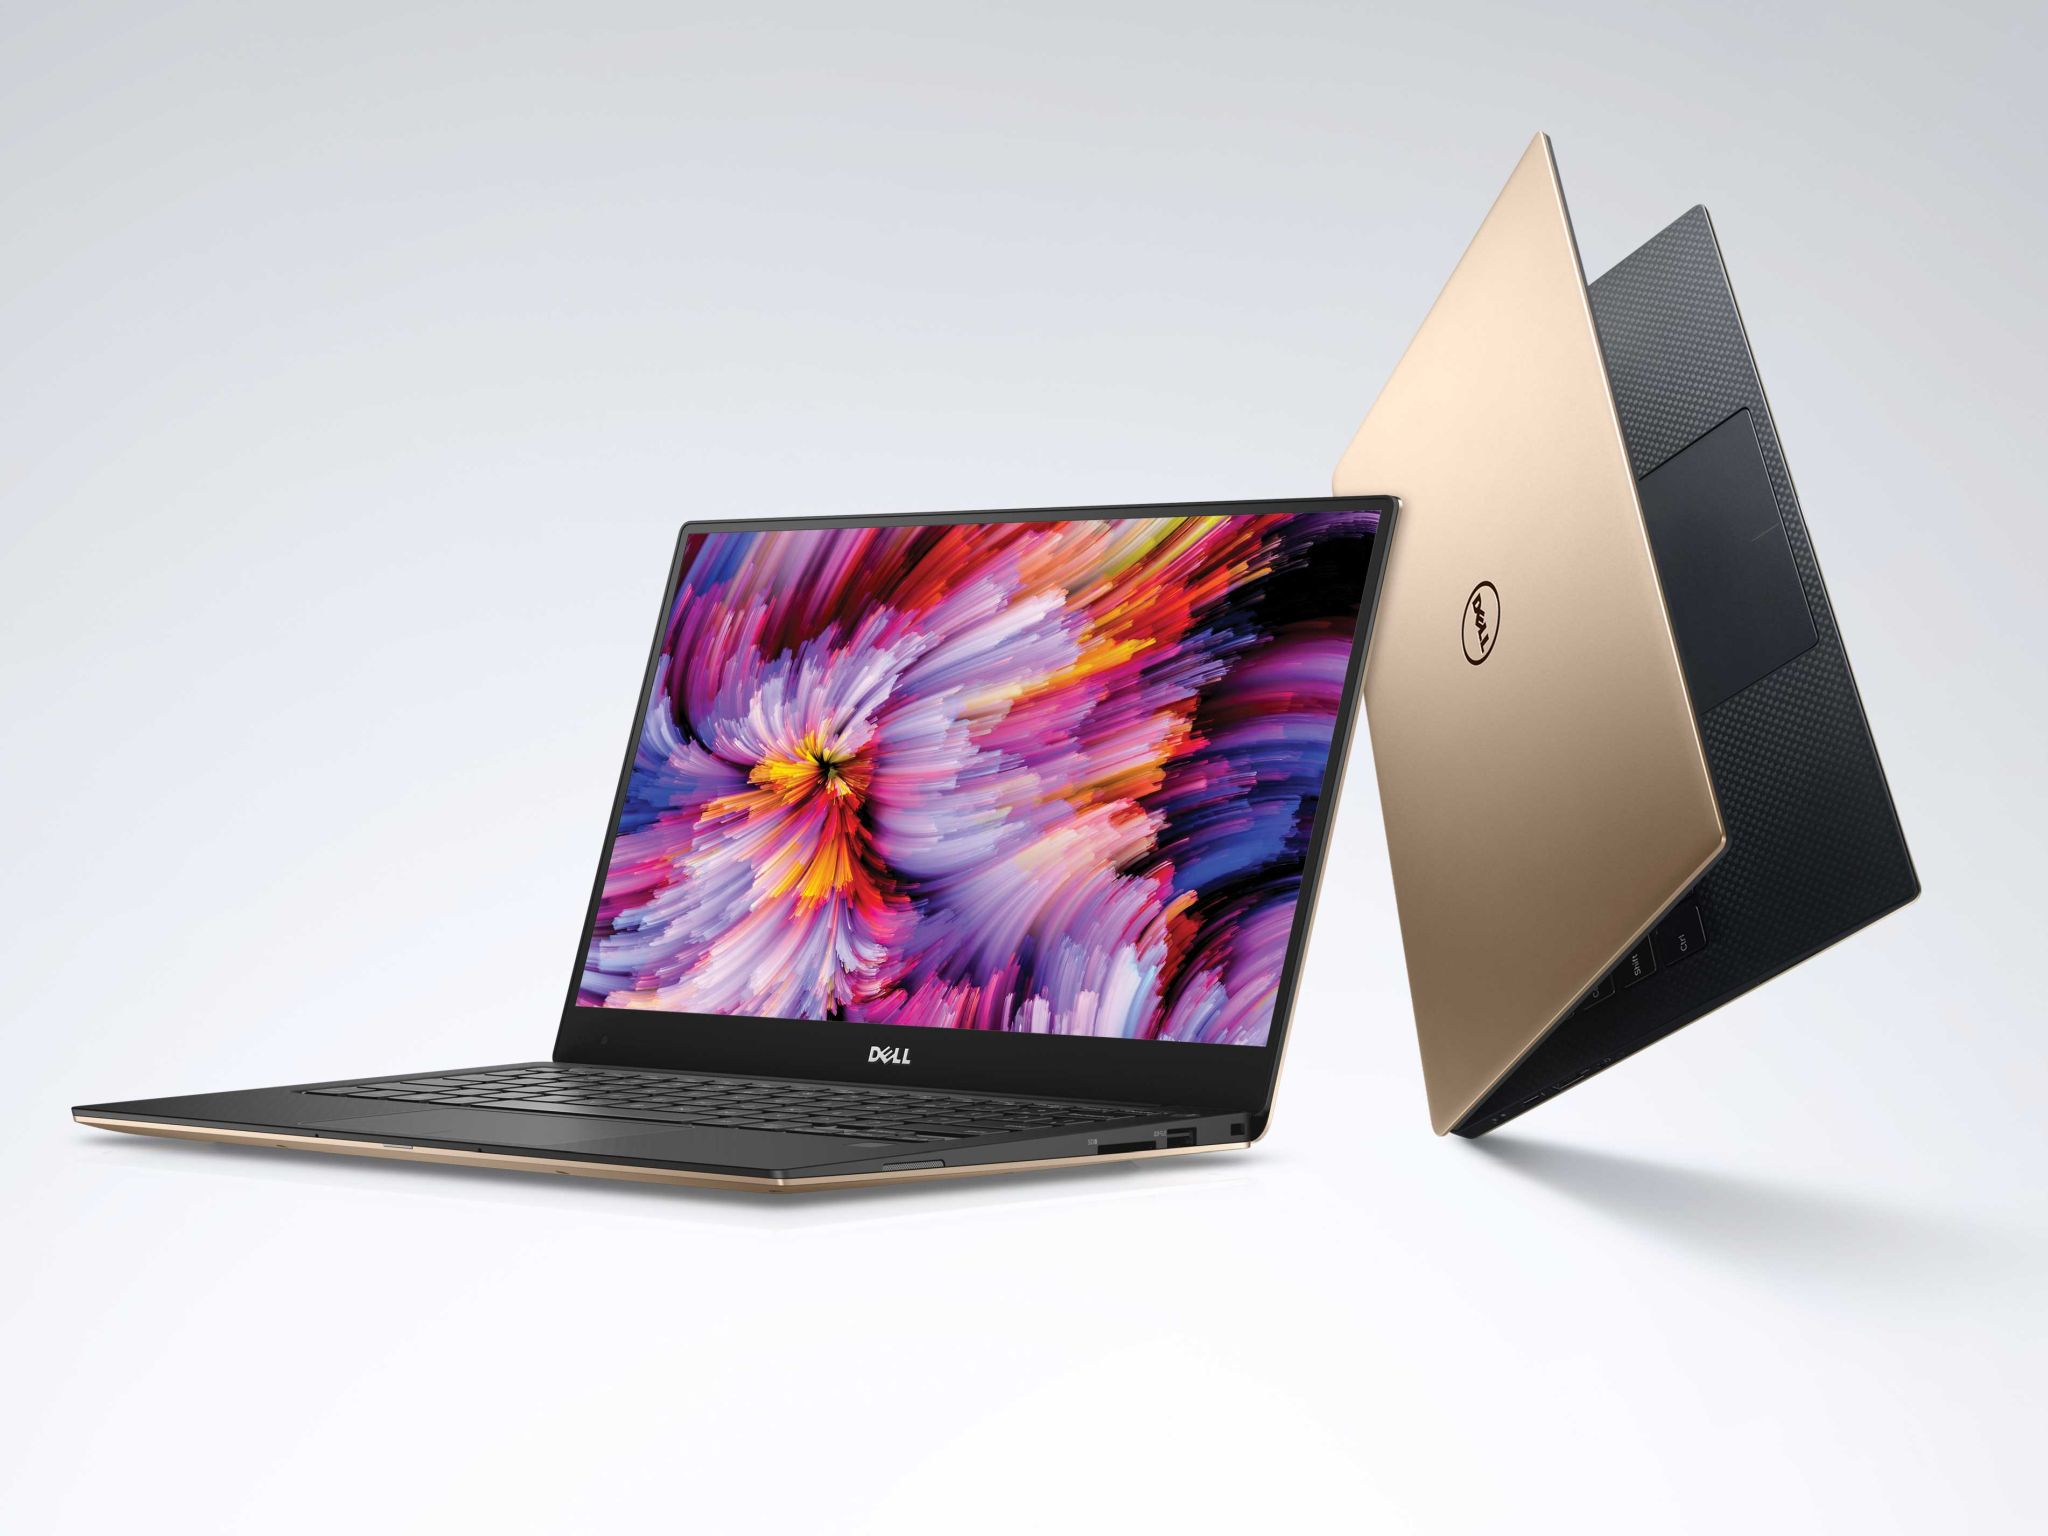 dell 13 inch laptop review